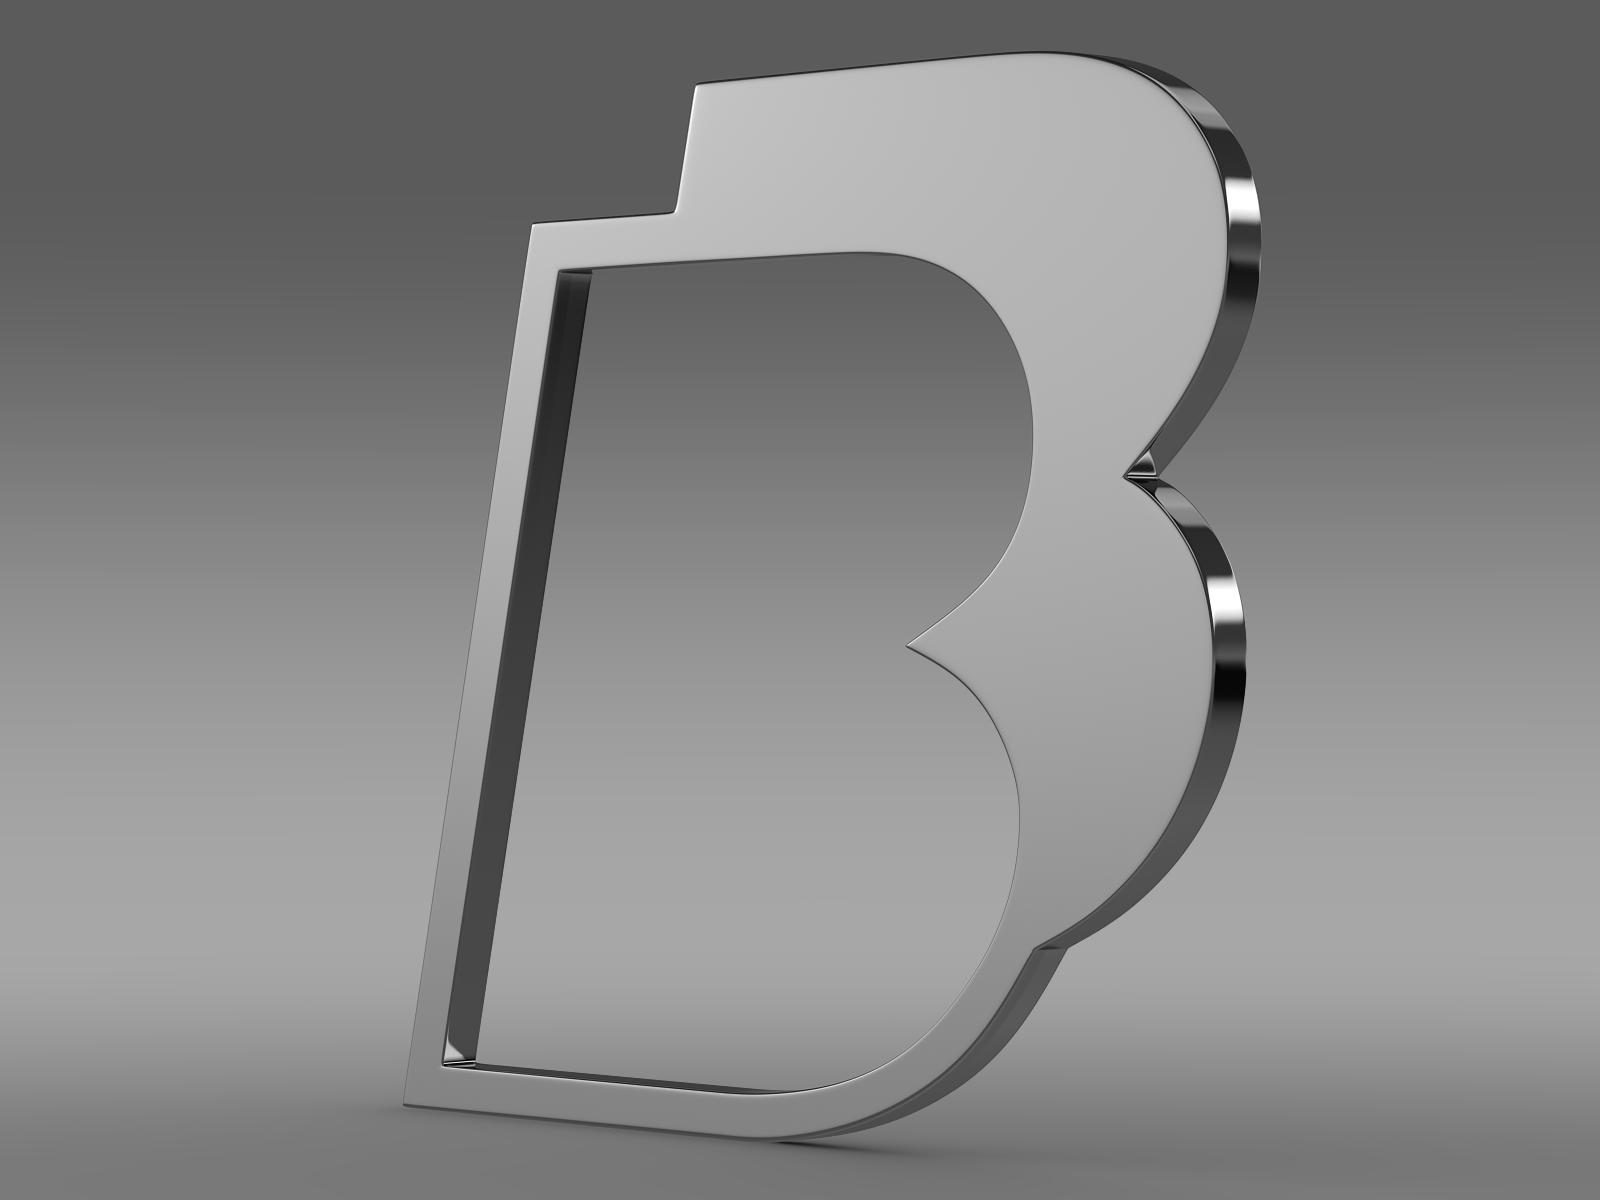 bb logo 3d model 3ds max fbx lwo ma hr hr xsi obj 208208